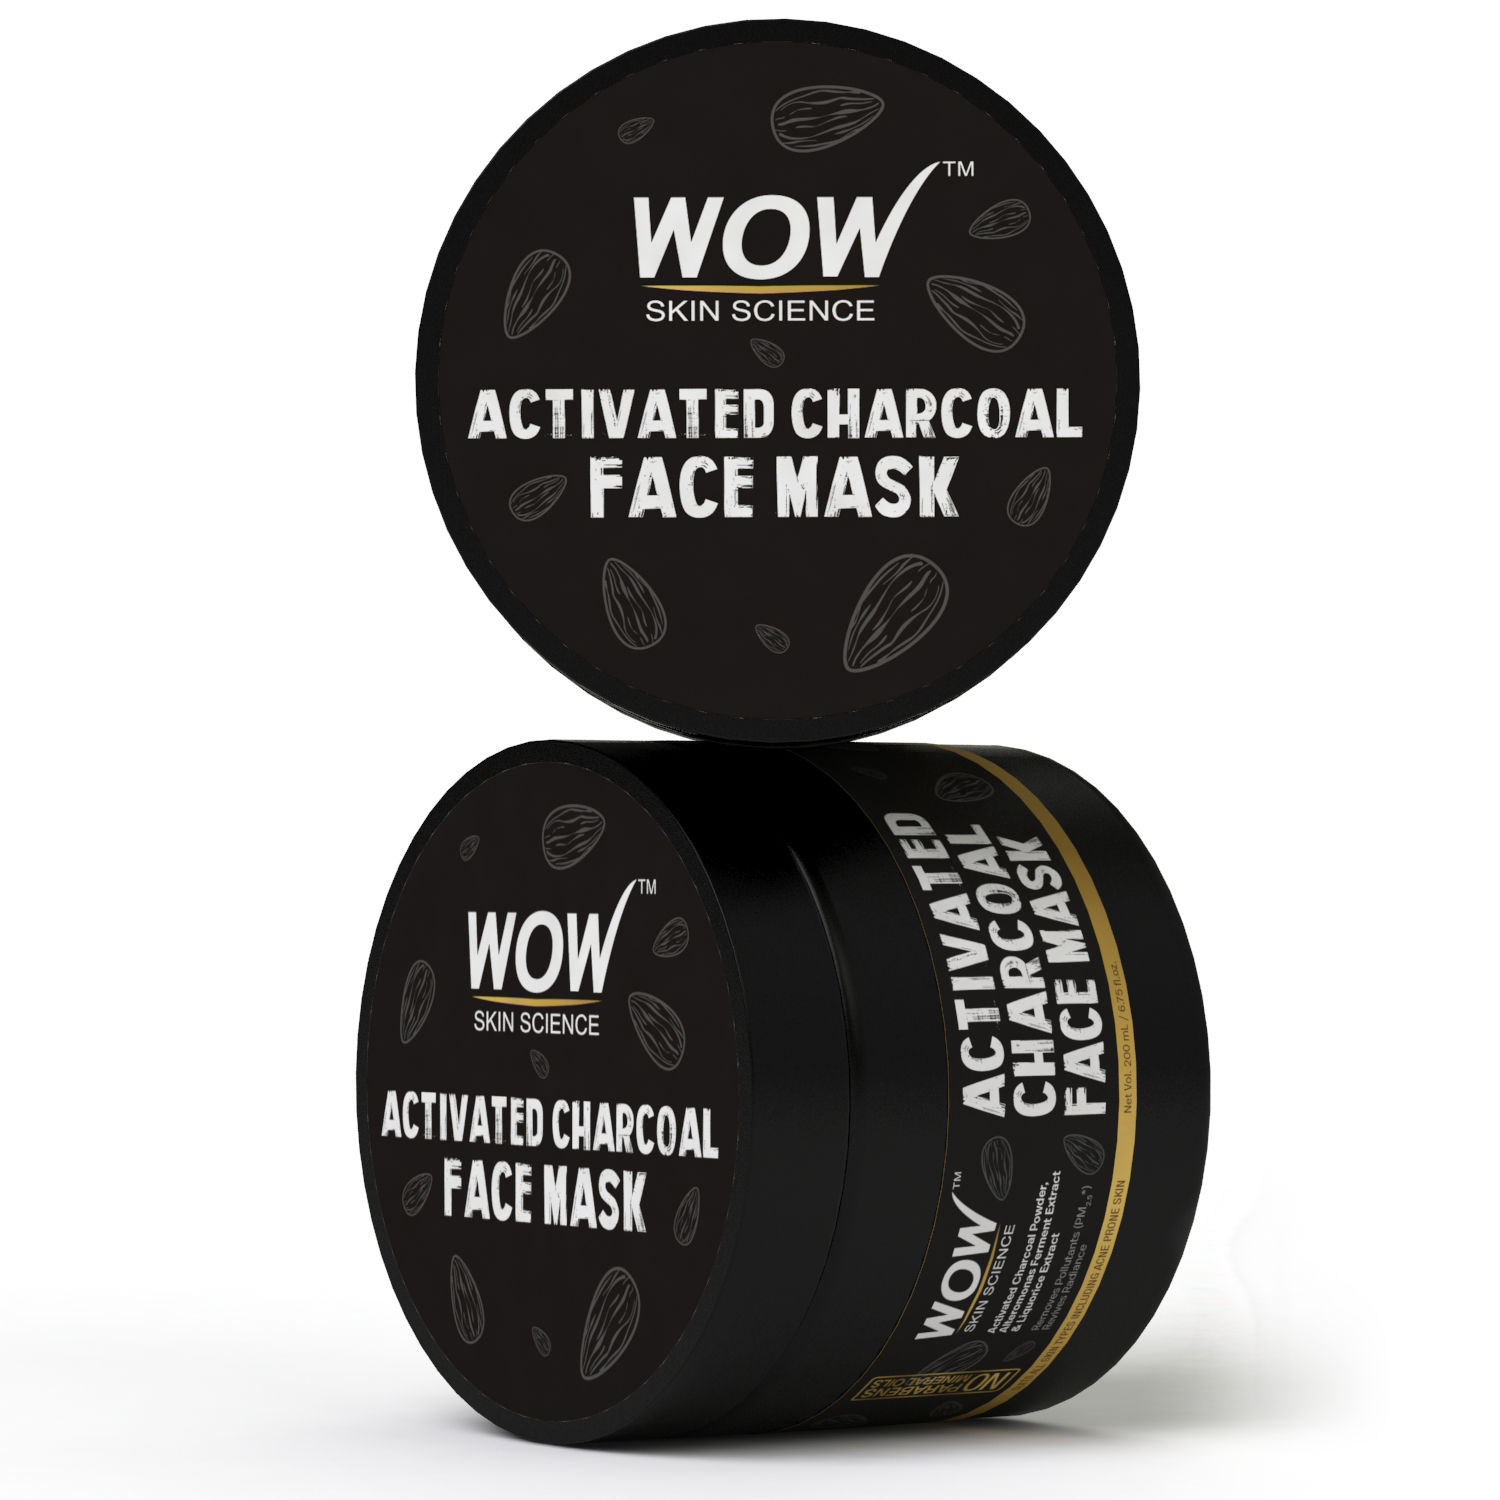 Buy WOW Skin Science Activated Charcoal Face Mask at Nykaa com